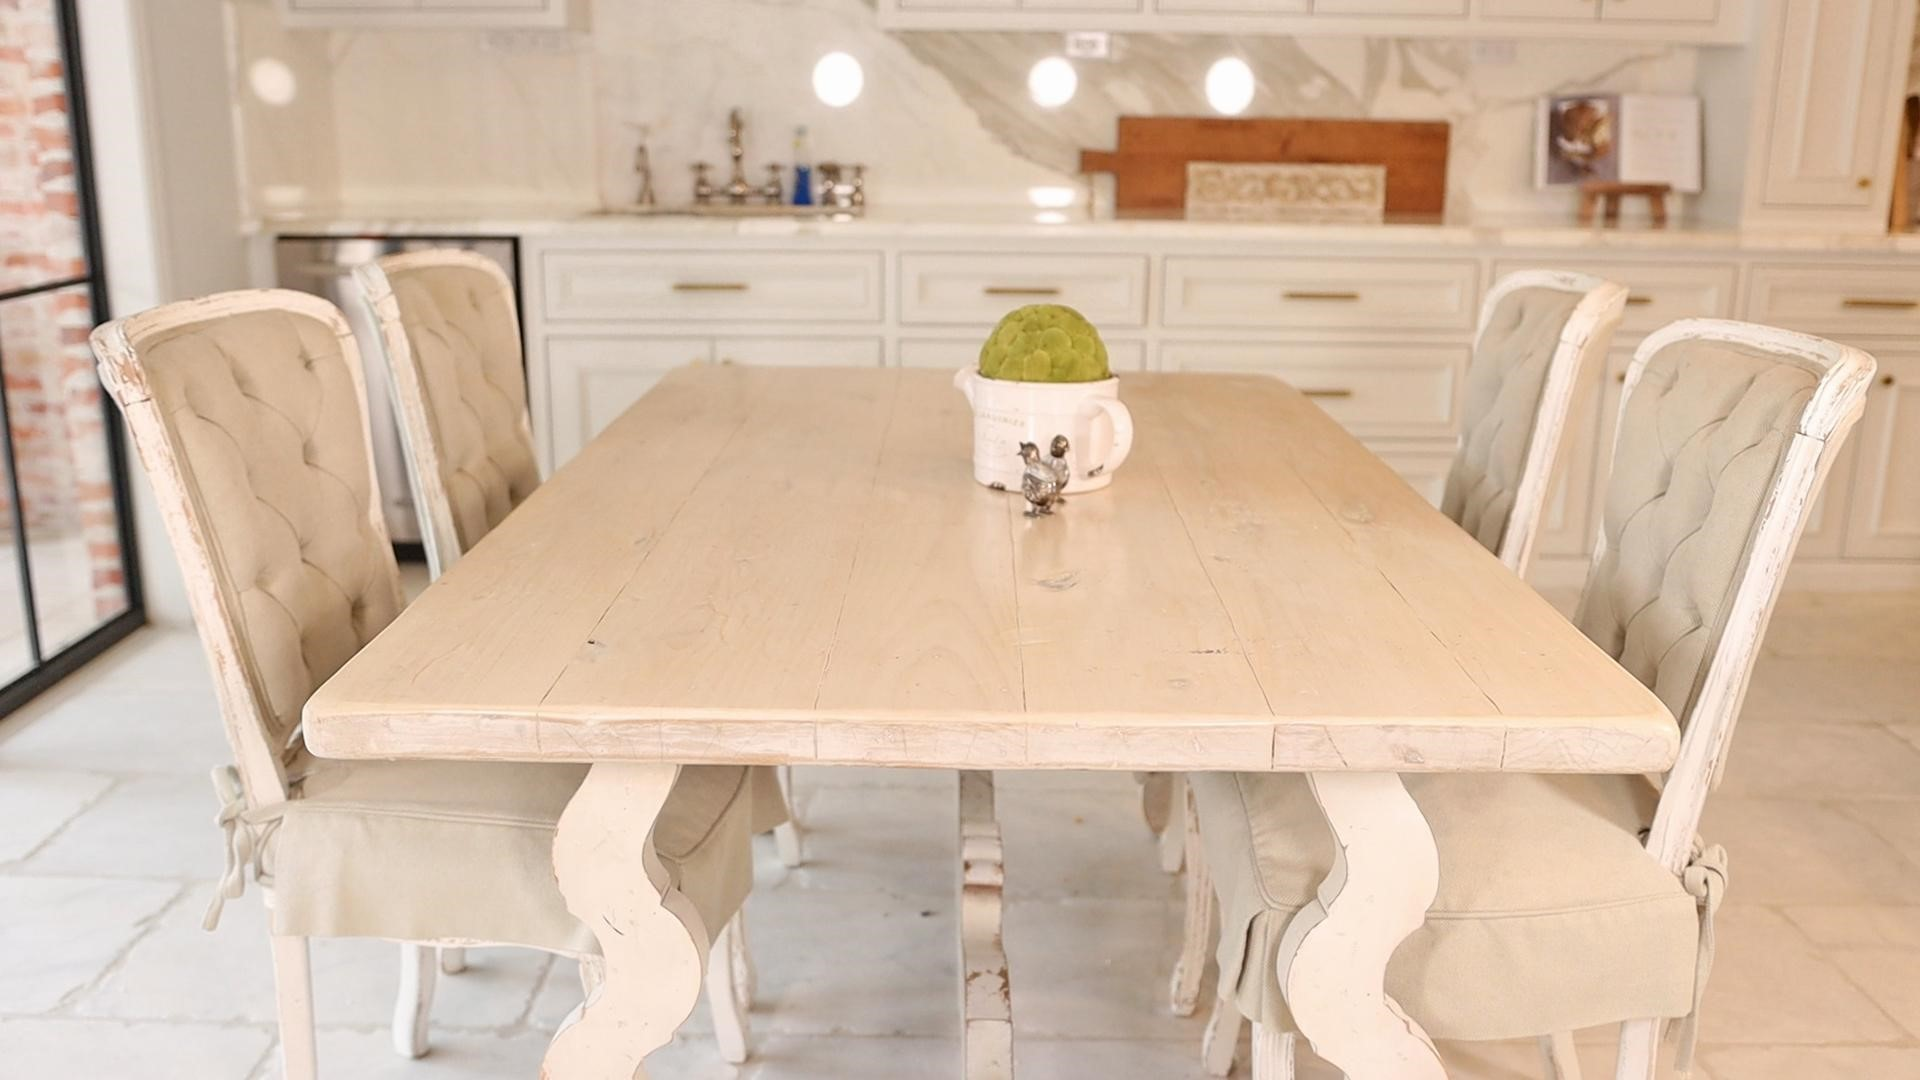 Lightweight rectangular table and heavier chairs contrast in this breakfast nook